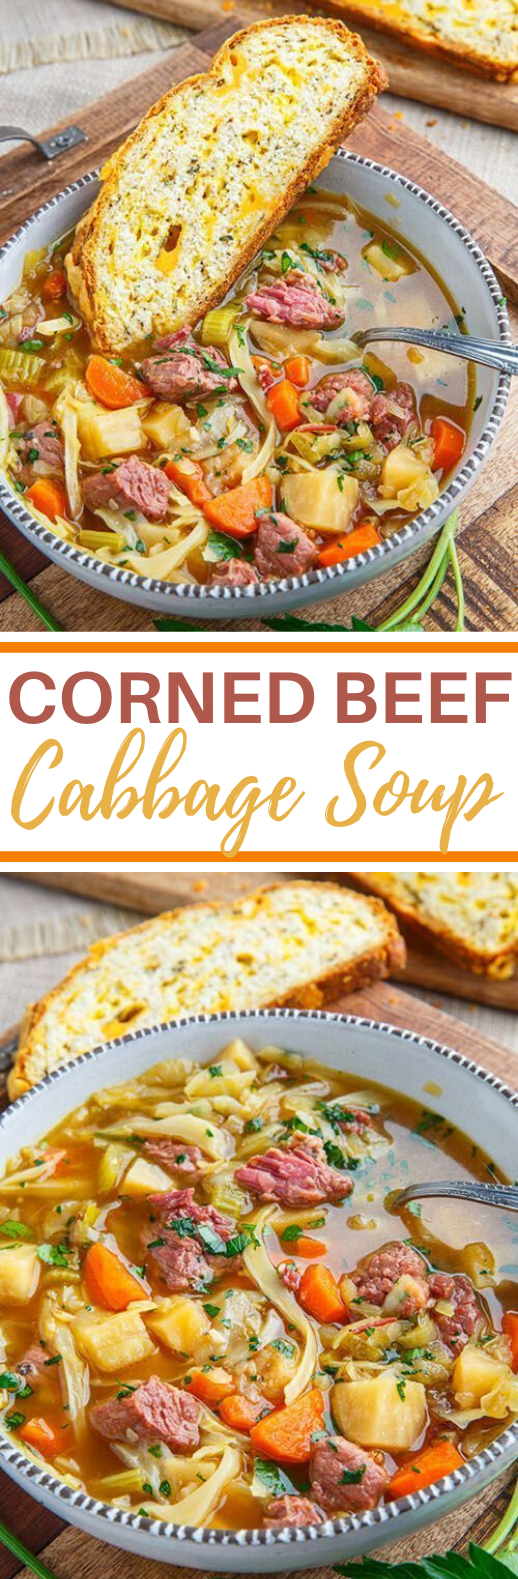 Corned Beef and Cabbage Soup #dinner #soup #comfortfood #beef #recipes